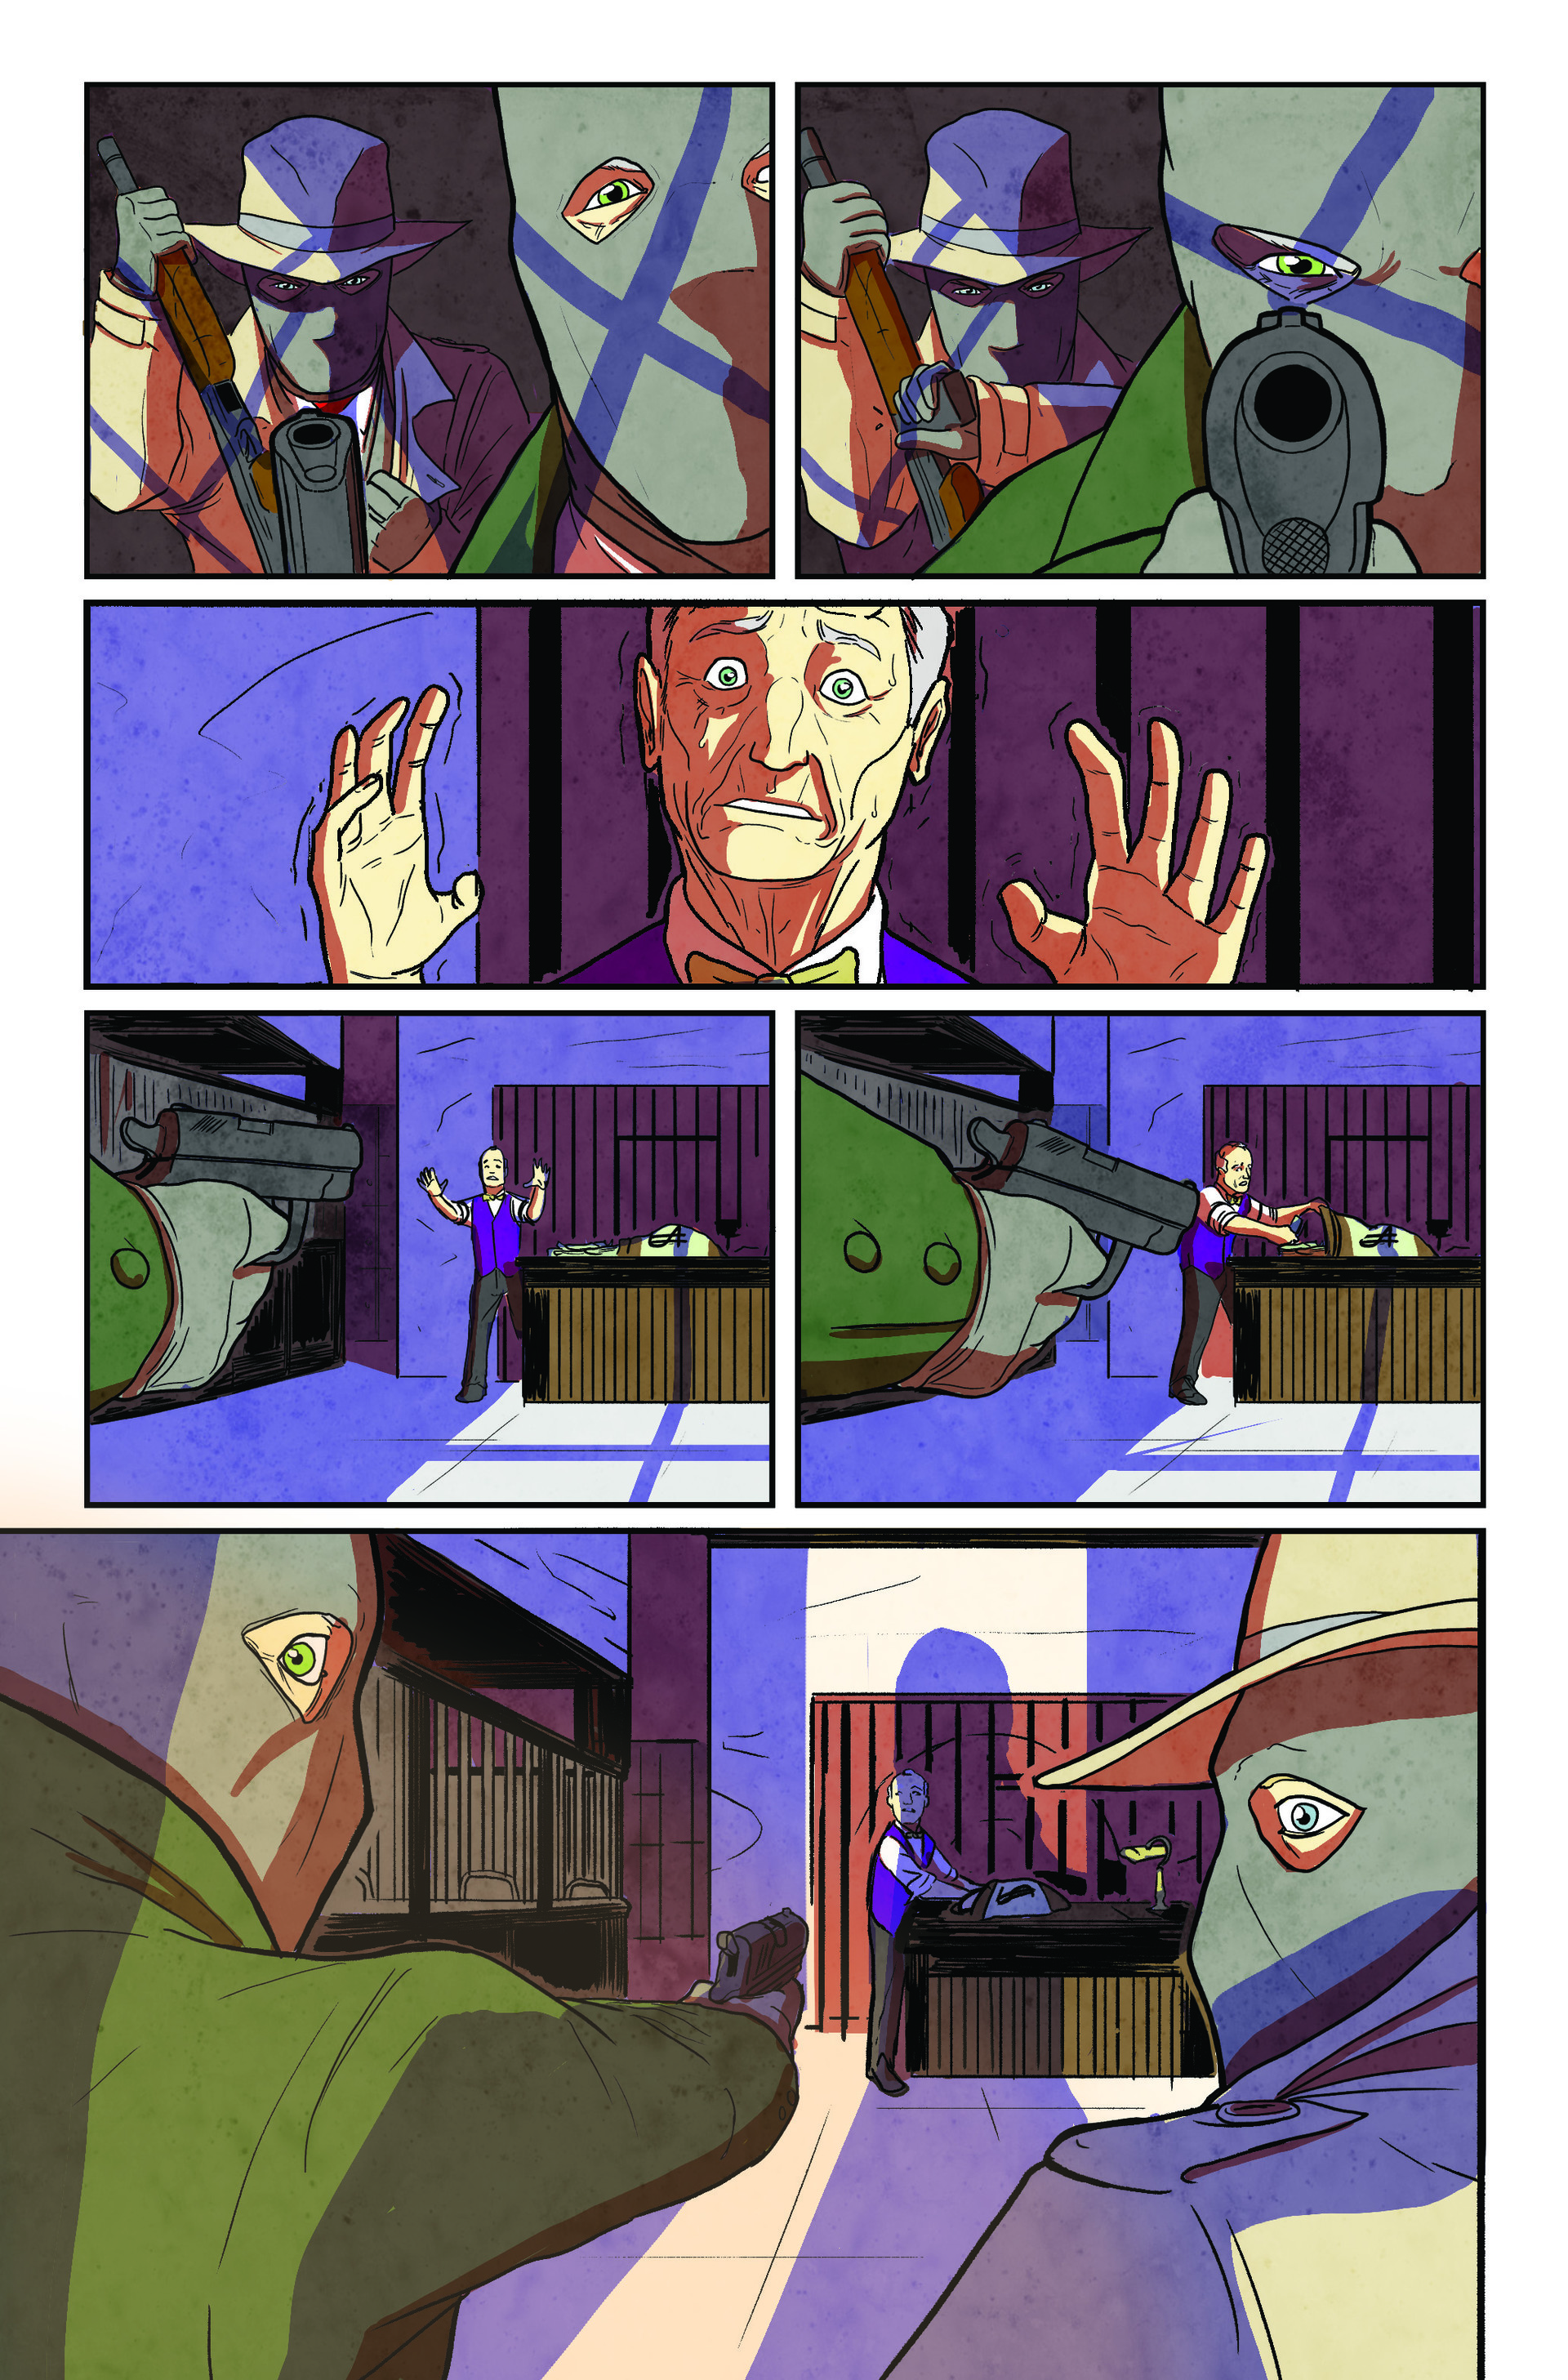 Elliot balson page 4 colours royal